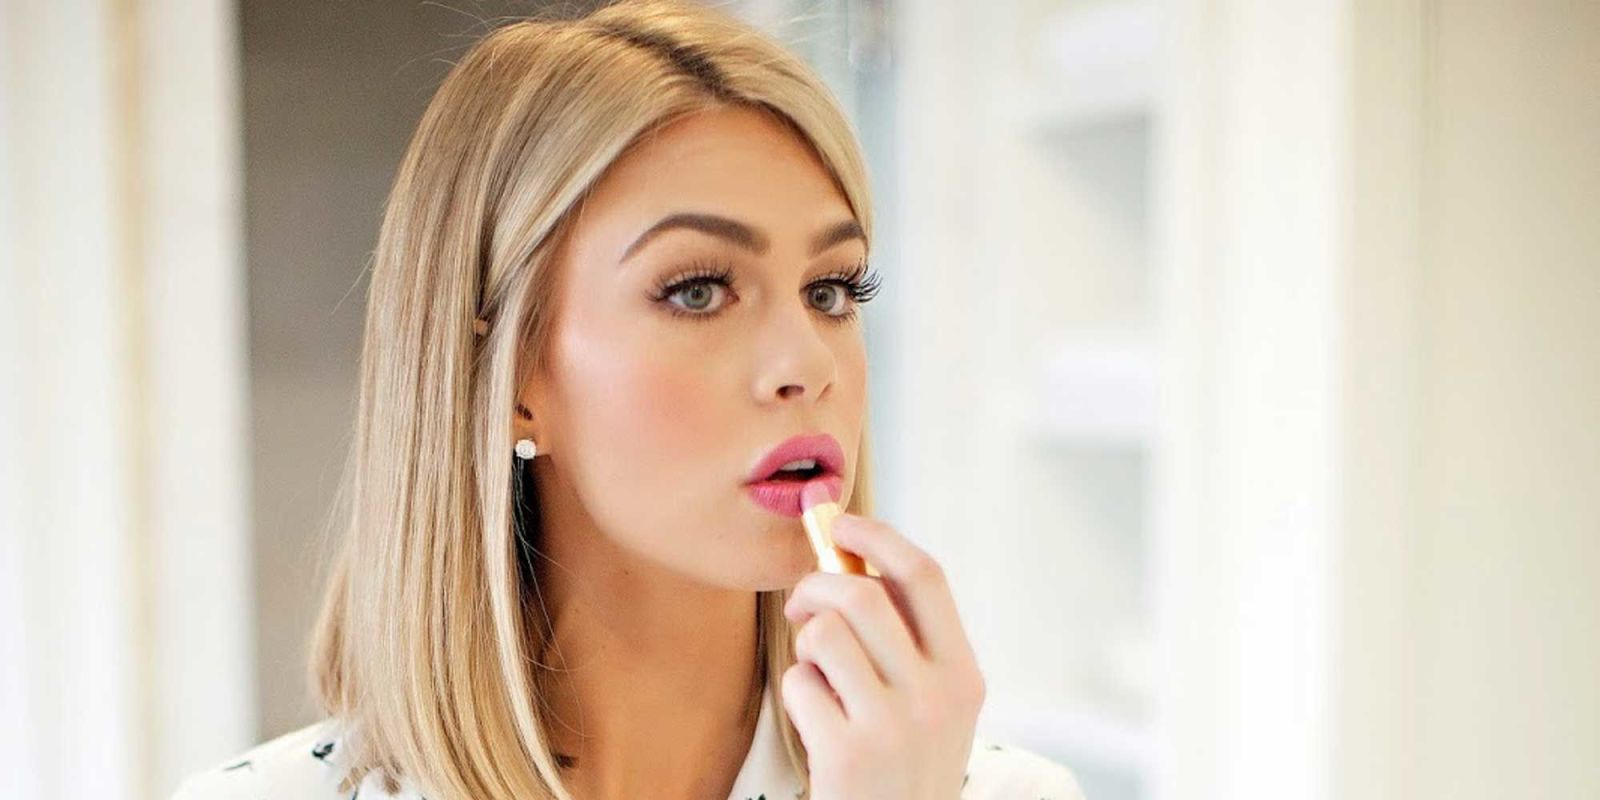 5 Secret Makeup Tips For Your Big Day